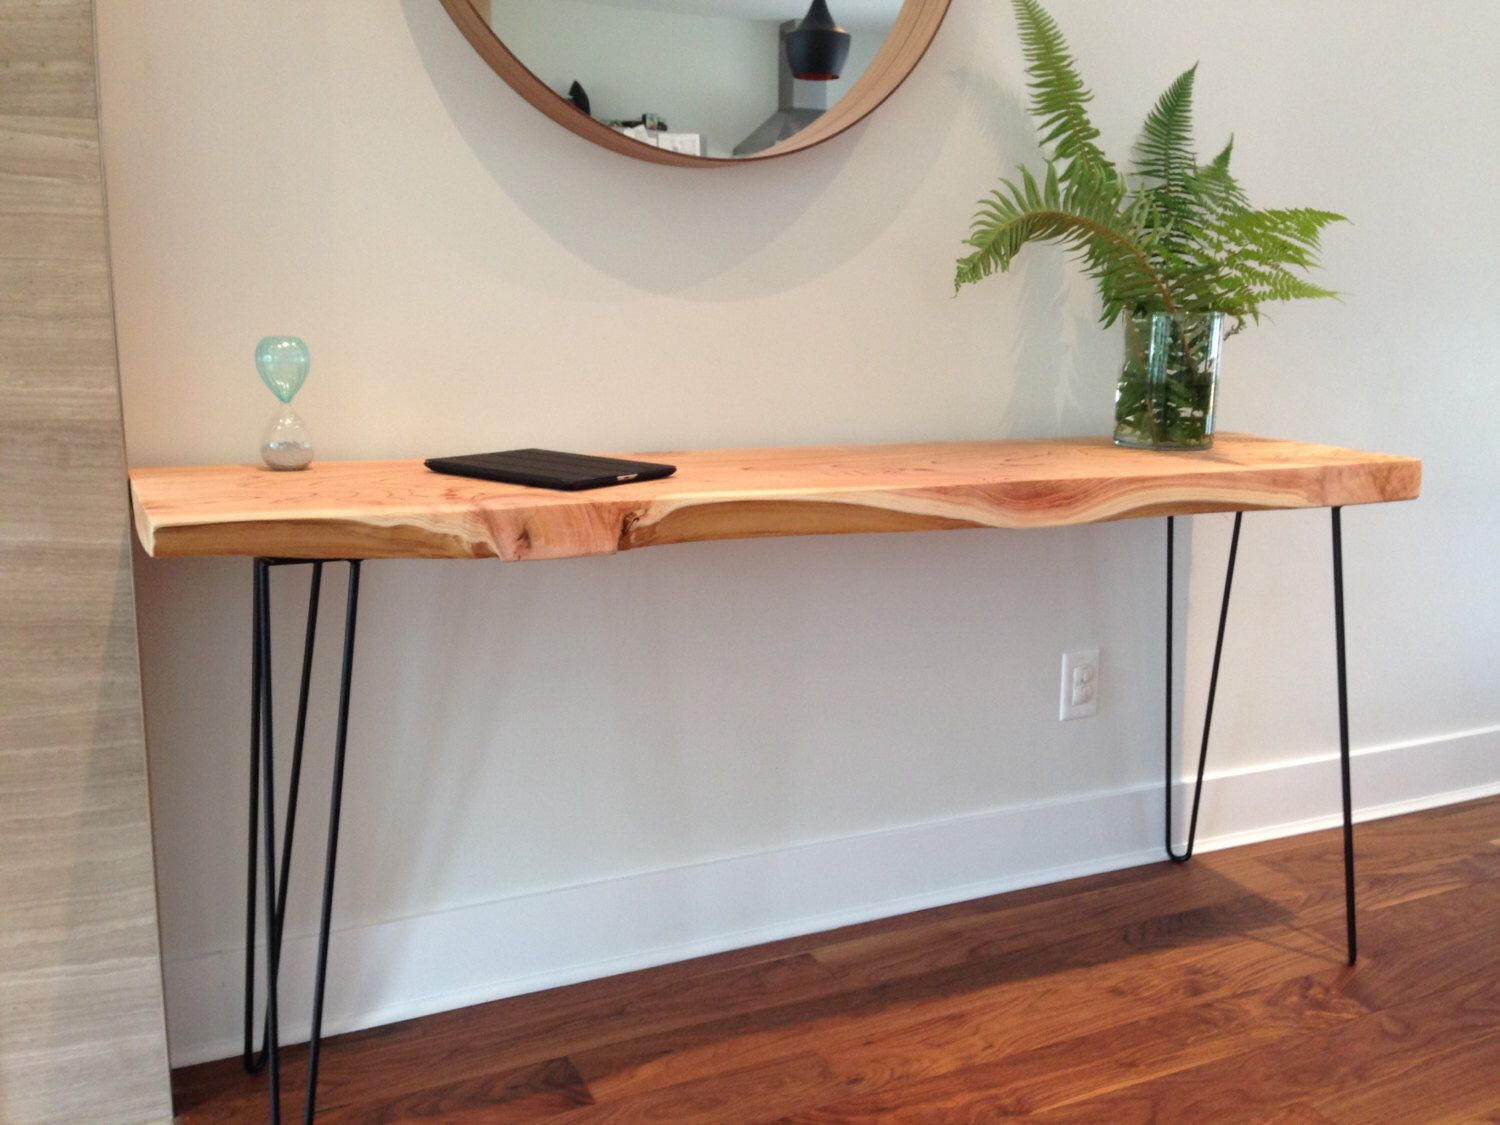 How to make a sofa table from 1 x 6 lumber - Console Table Wood Desk Plant Stand Sofa Table Entryway Table Mid Century Hairpin Legs 15 W X 58 L X 30 H X 1 25 T Vancouver Bc